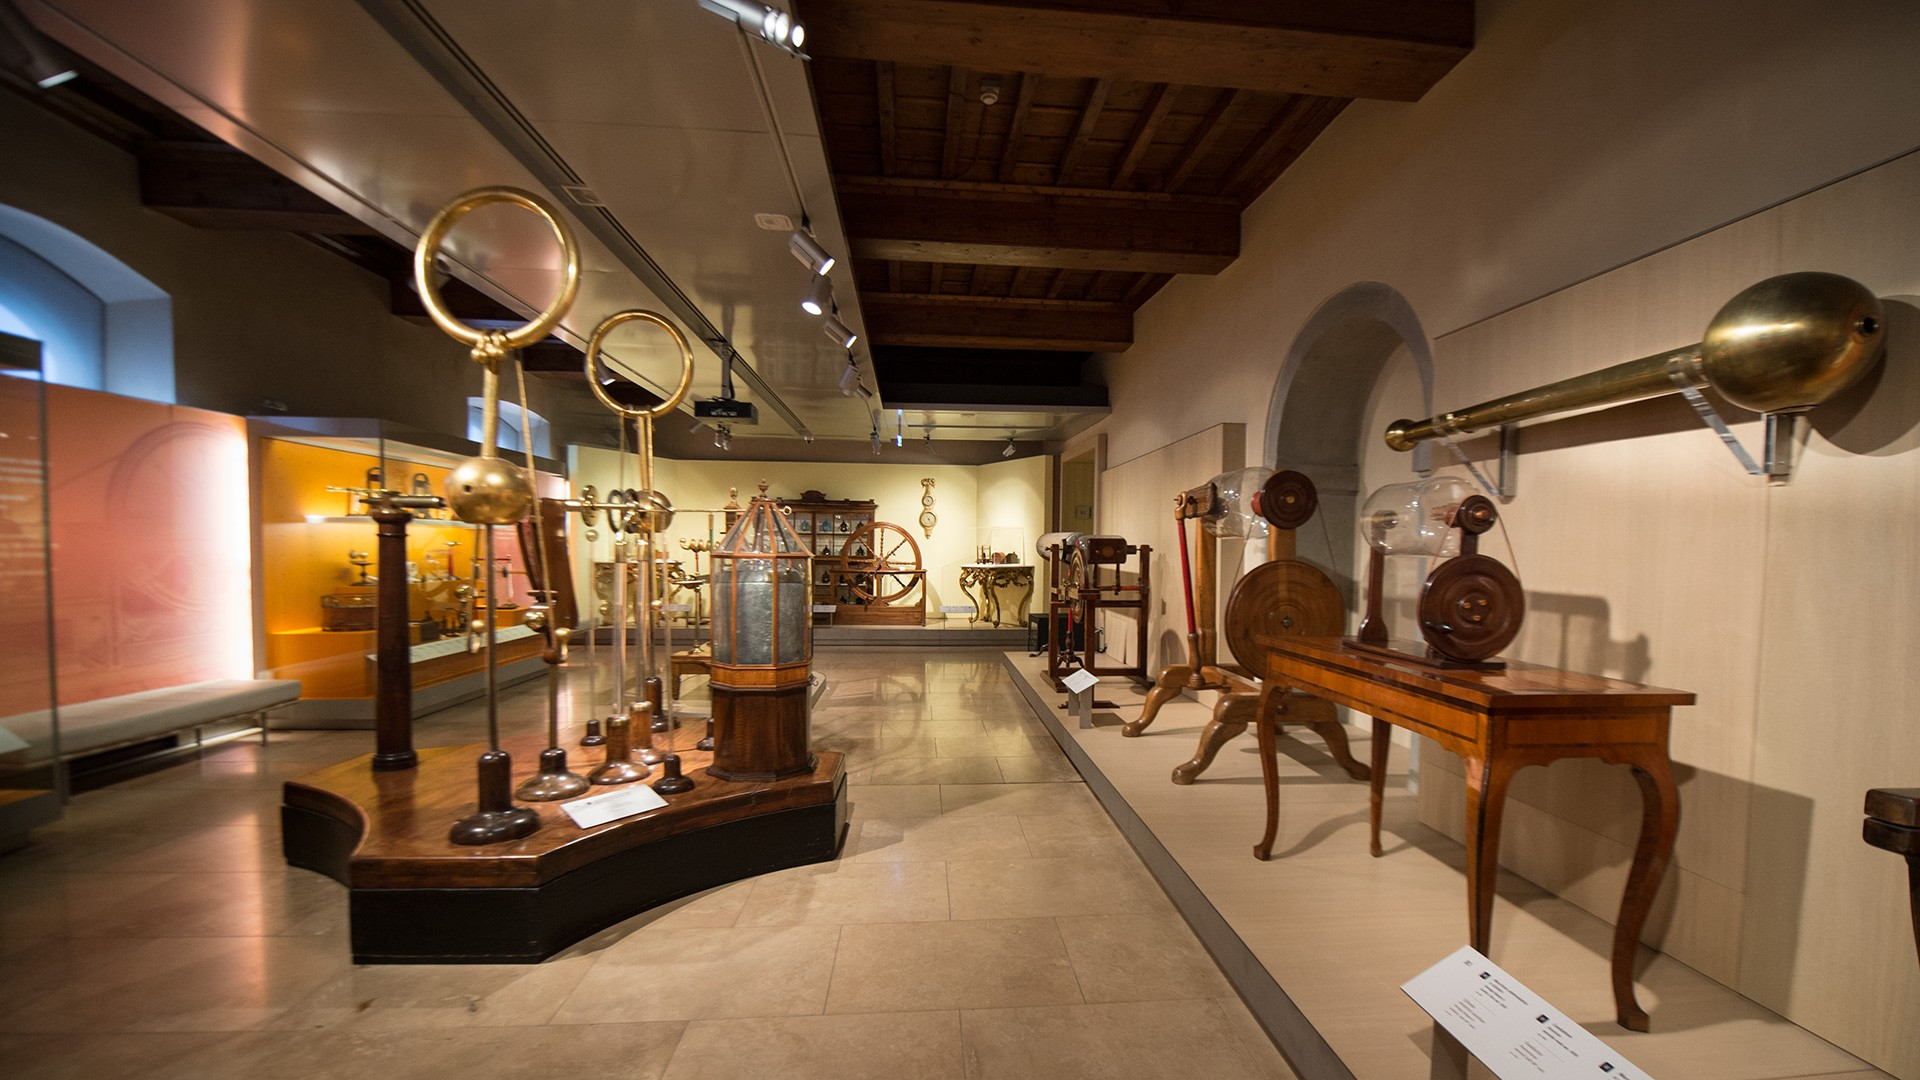 museo de florence italia galileo galilei - photo#22